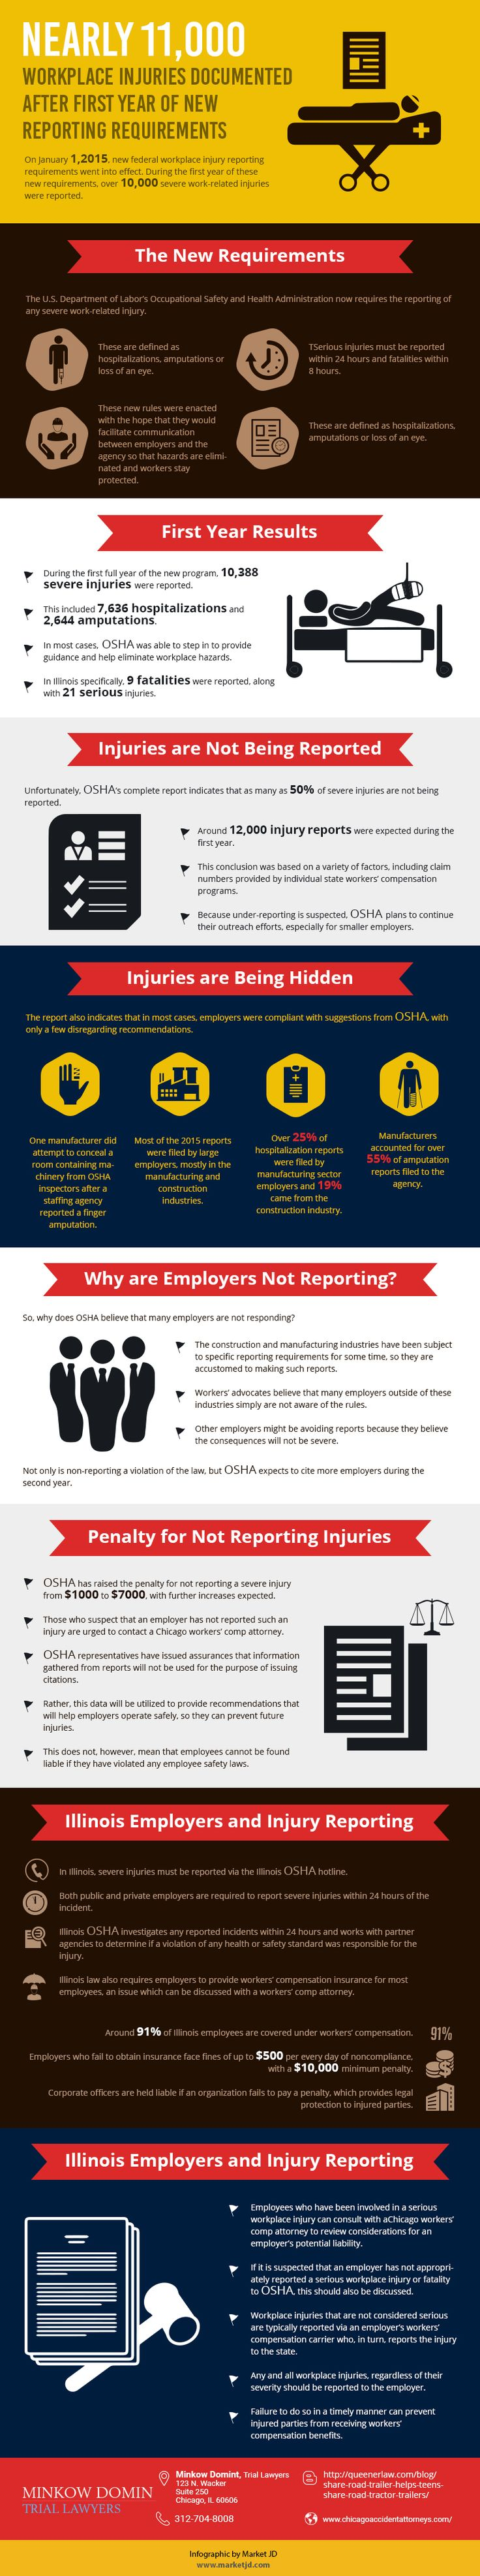 On January 1,2015 new federal workplace injury reporting requirements went into effect, during the first year of these new requirements over 10,000 severe work related injuries were reported. The U.S departments of labor's occupational safety and health administration now requires the reporting of any severe work related injury.